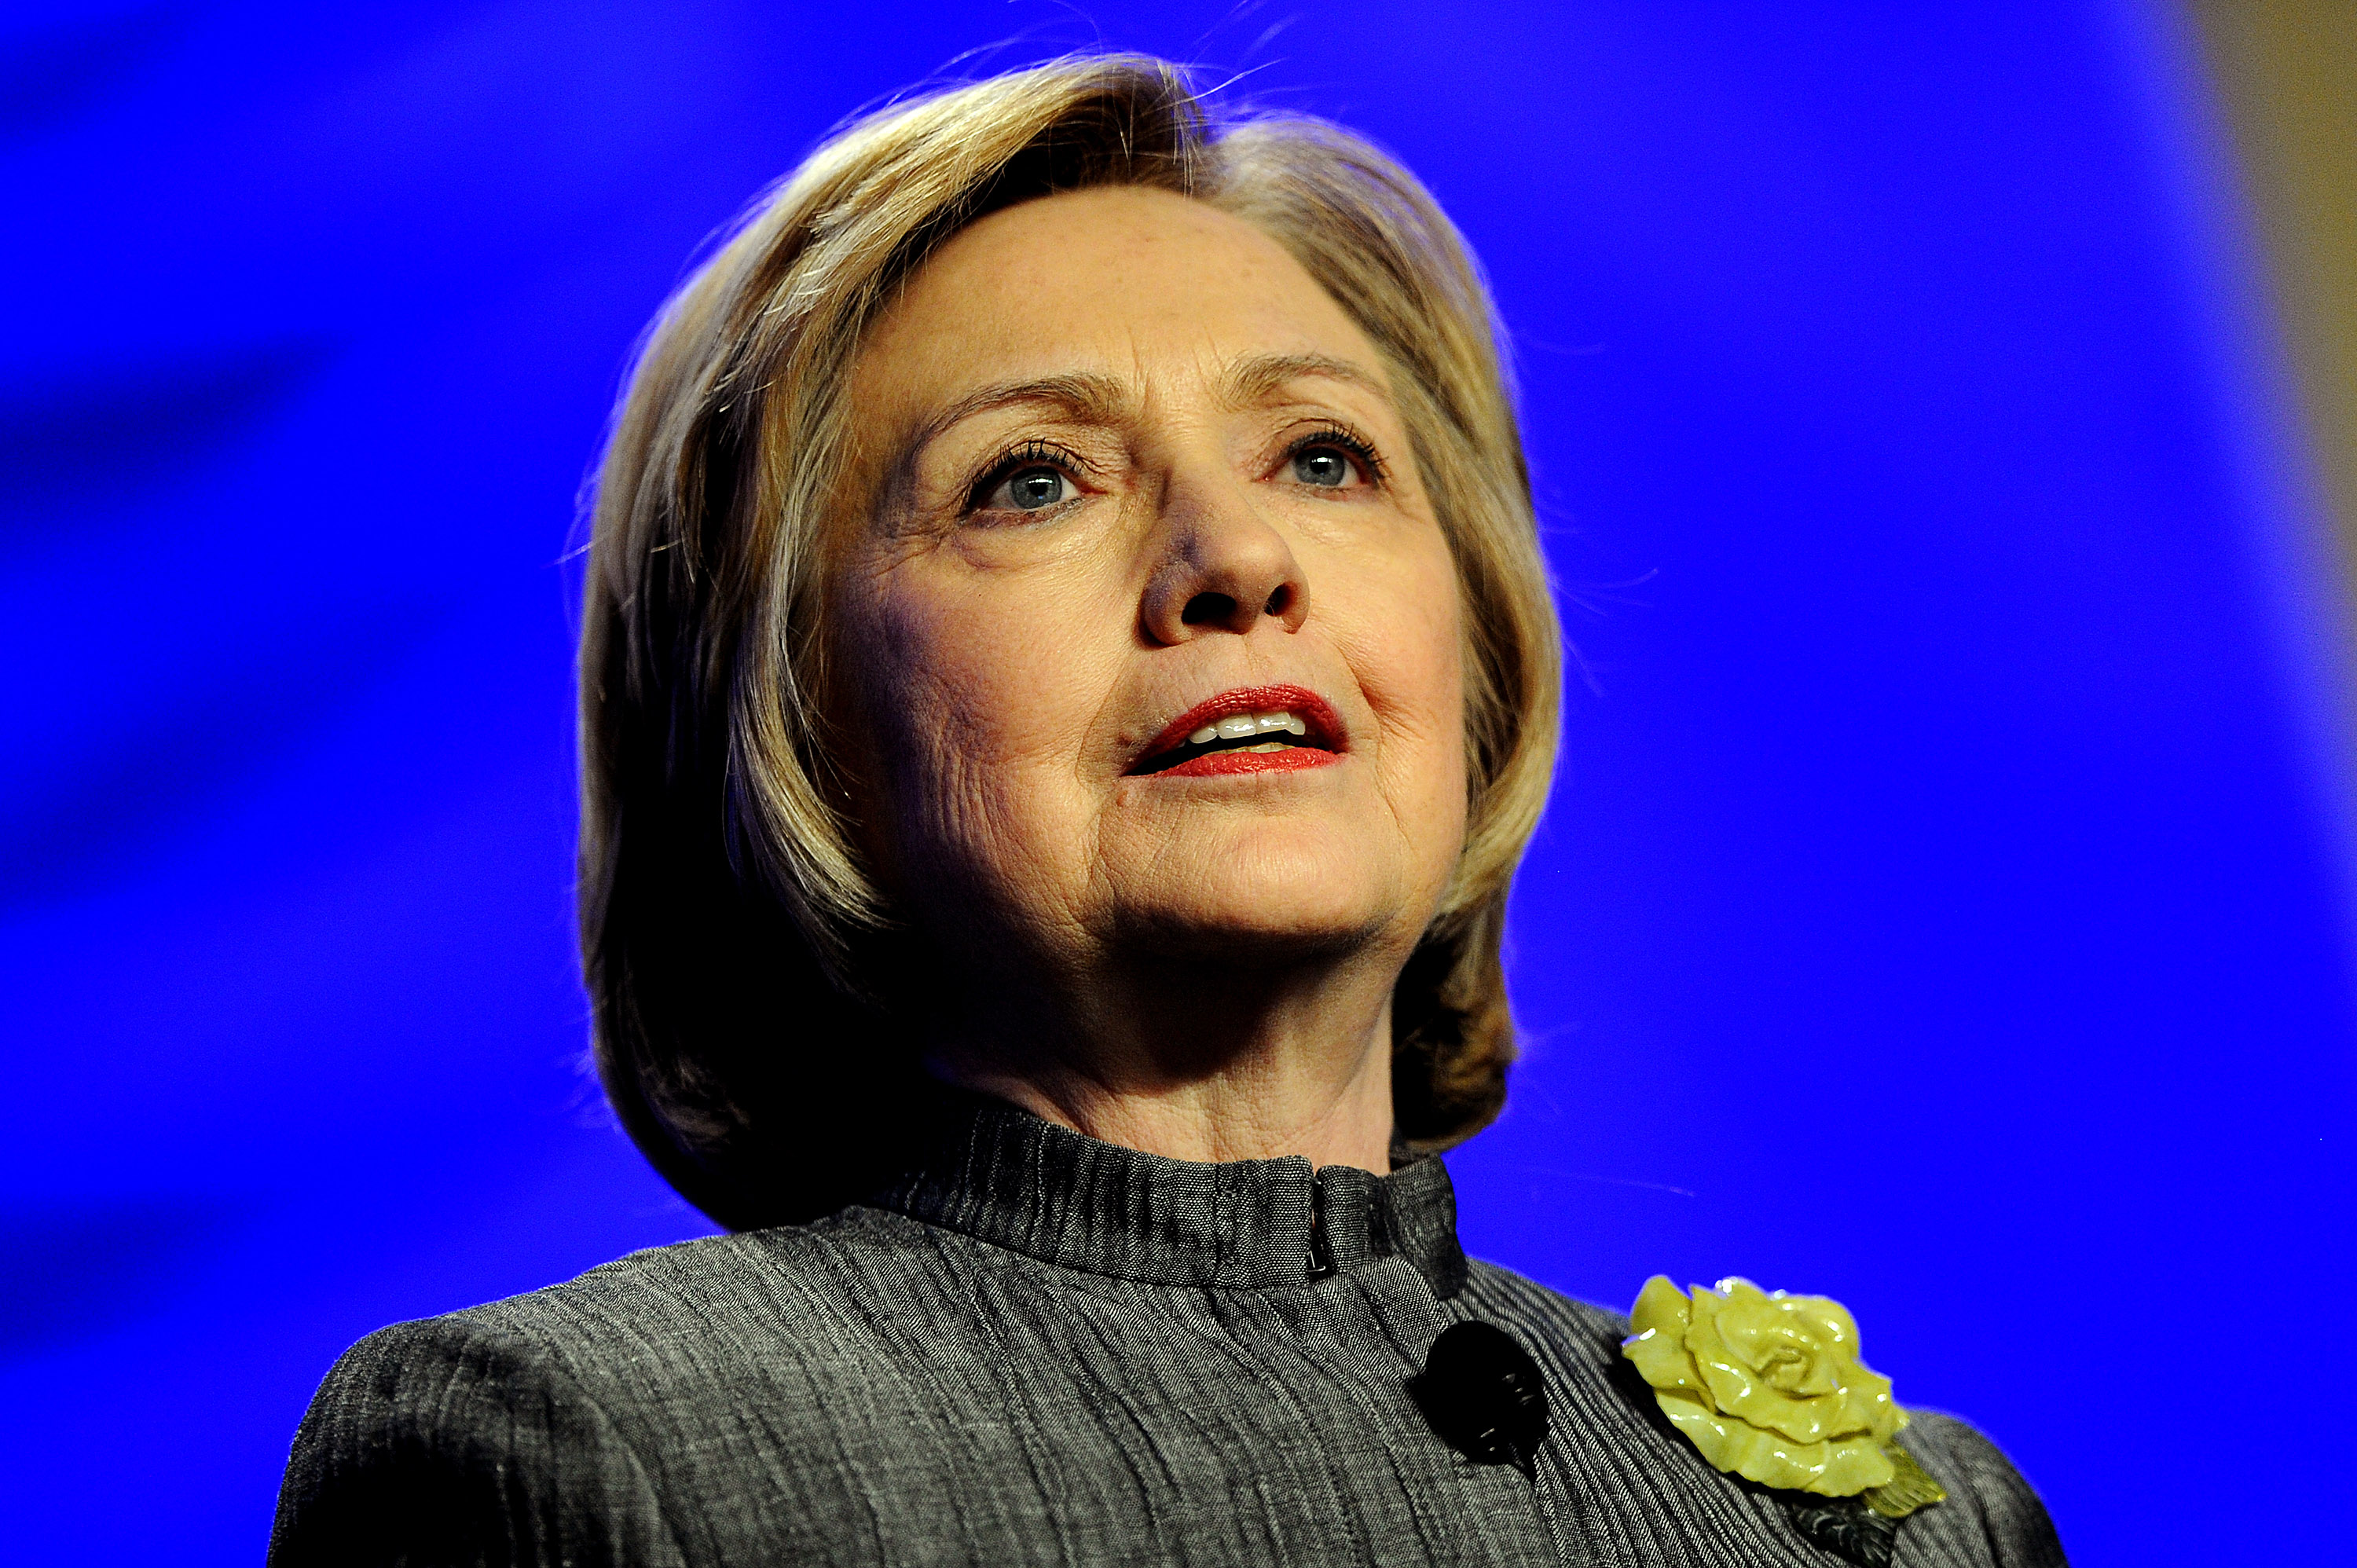 Former Secretary of State Hillary Rodham Clinton delivers remarks during the National Council for Behavioral Health's Annual Conference in National Harbor, Md., on May 6, 2014